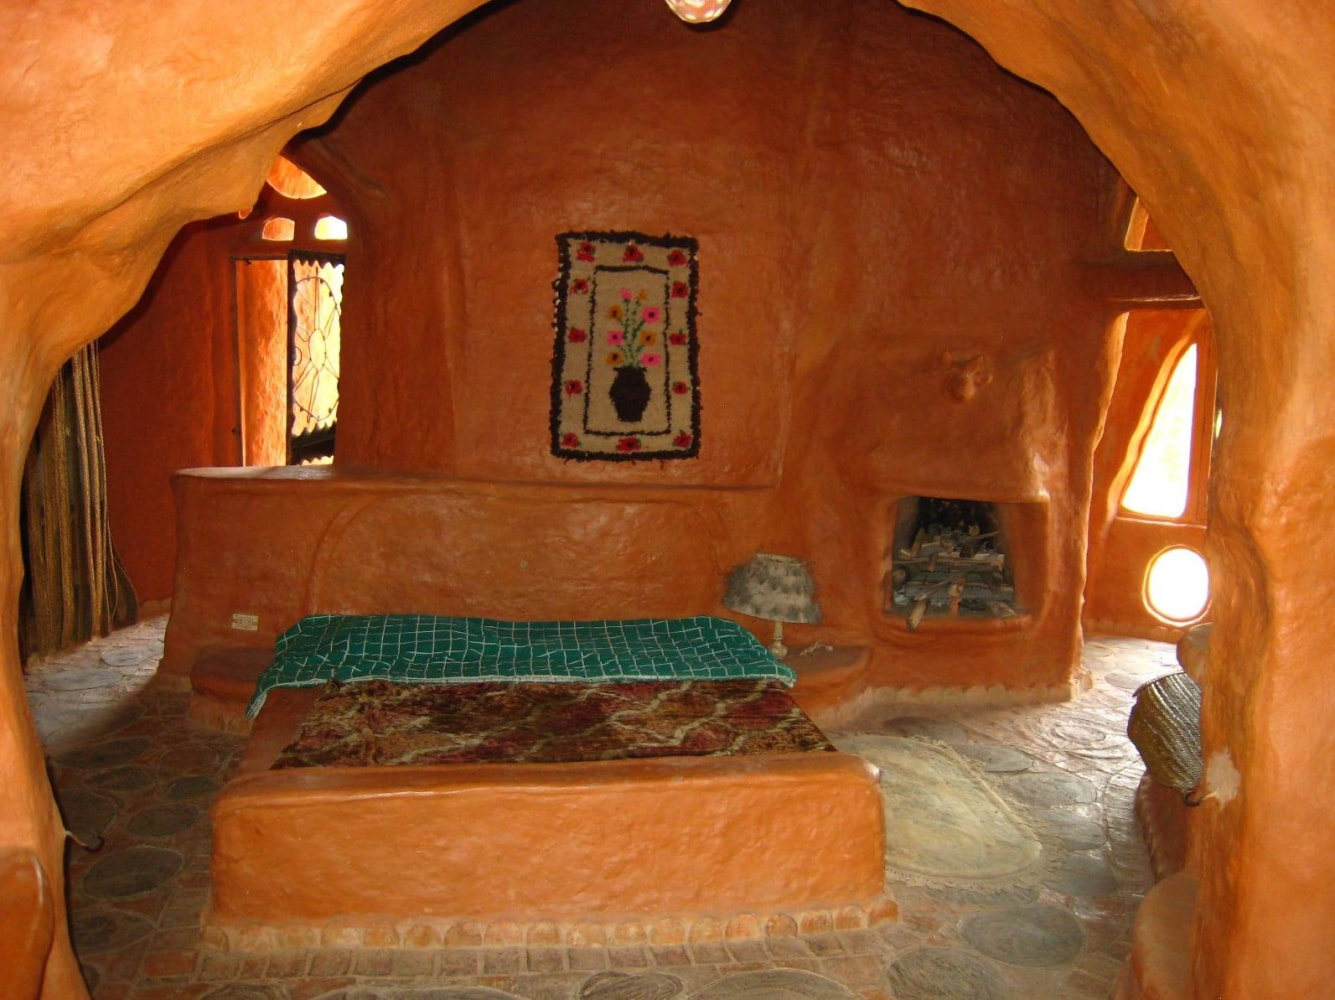 Flintstones House Made Entirely Of Clay Attracts